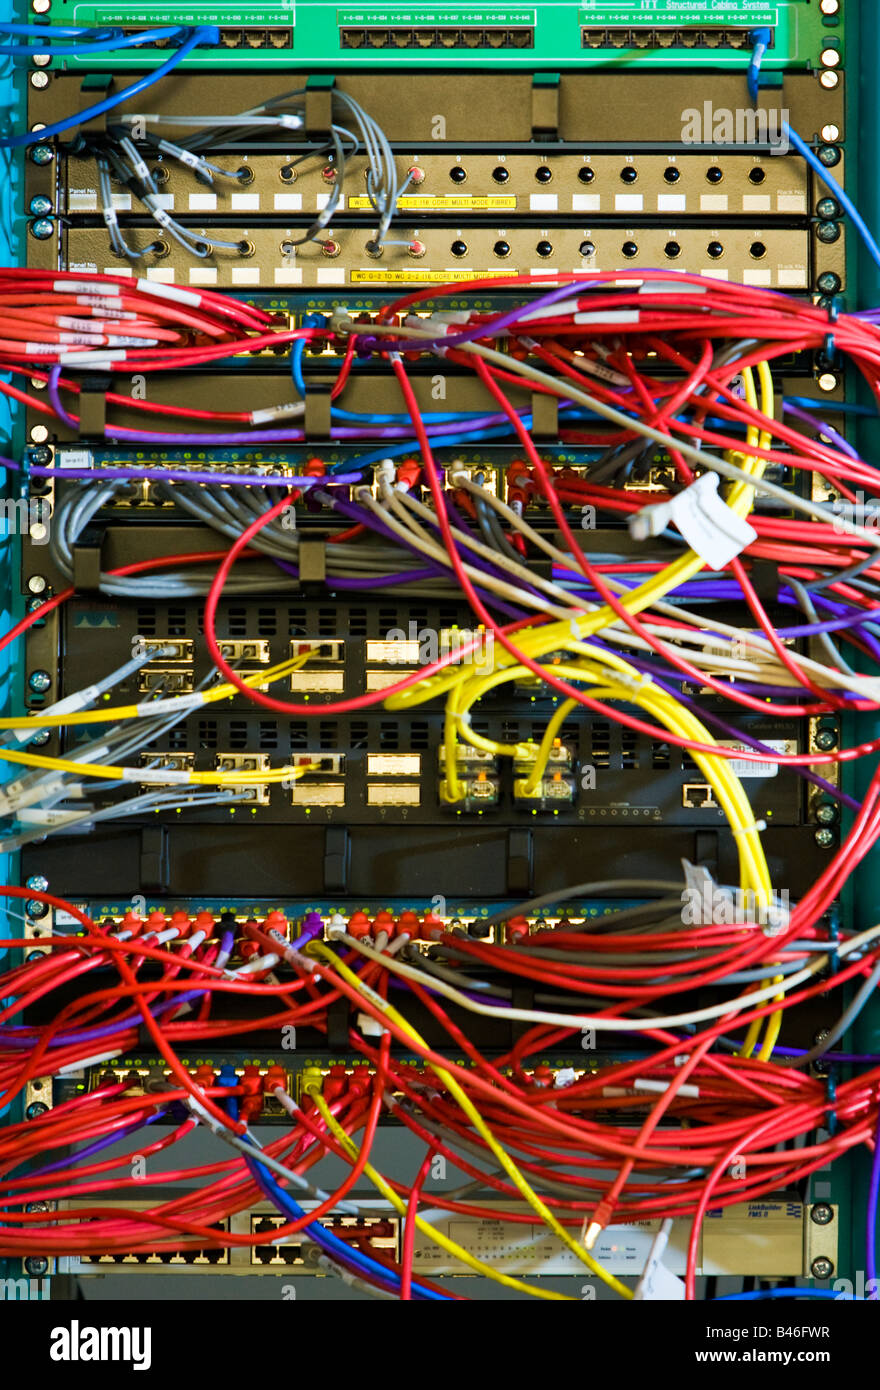 medium resolution of computer cables ethernet network rack server connection